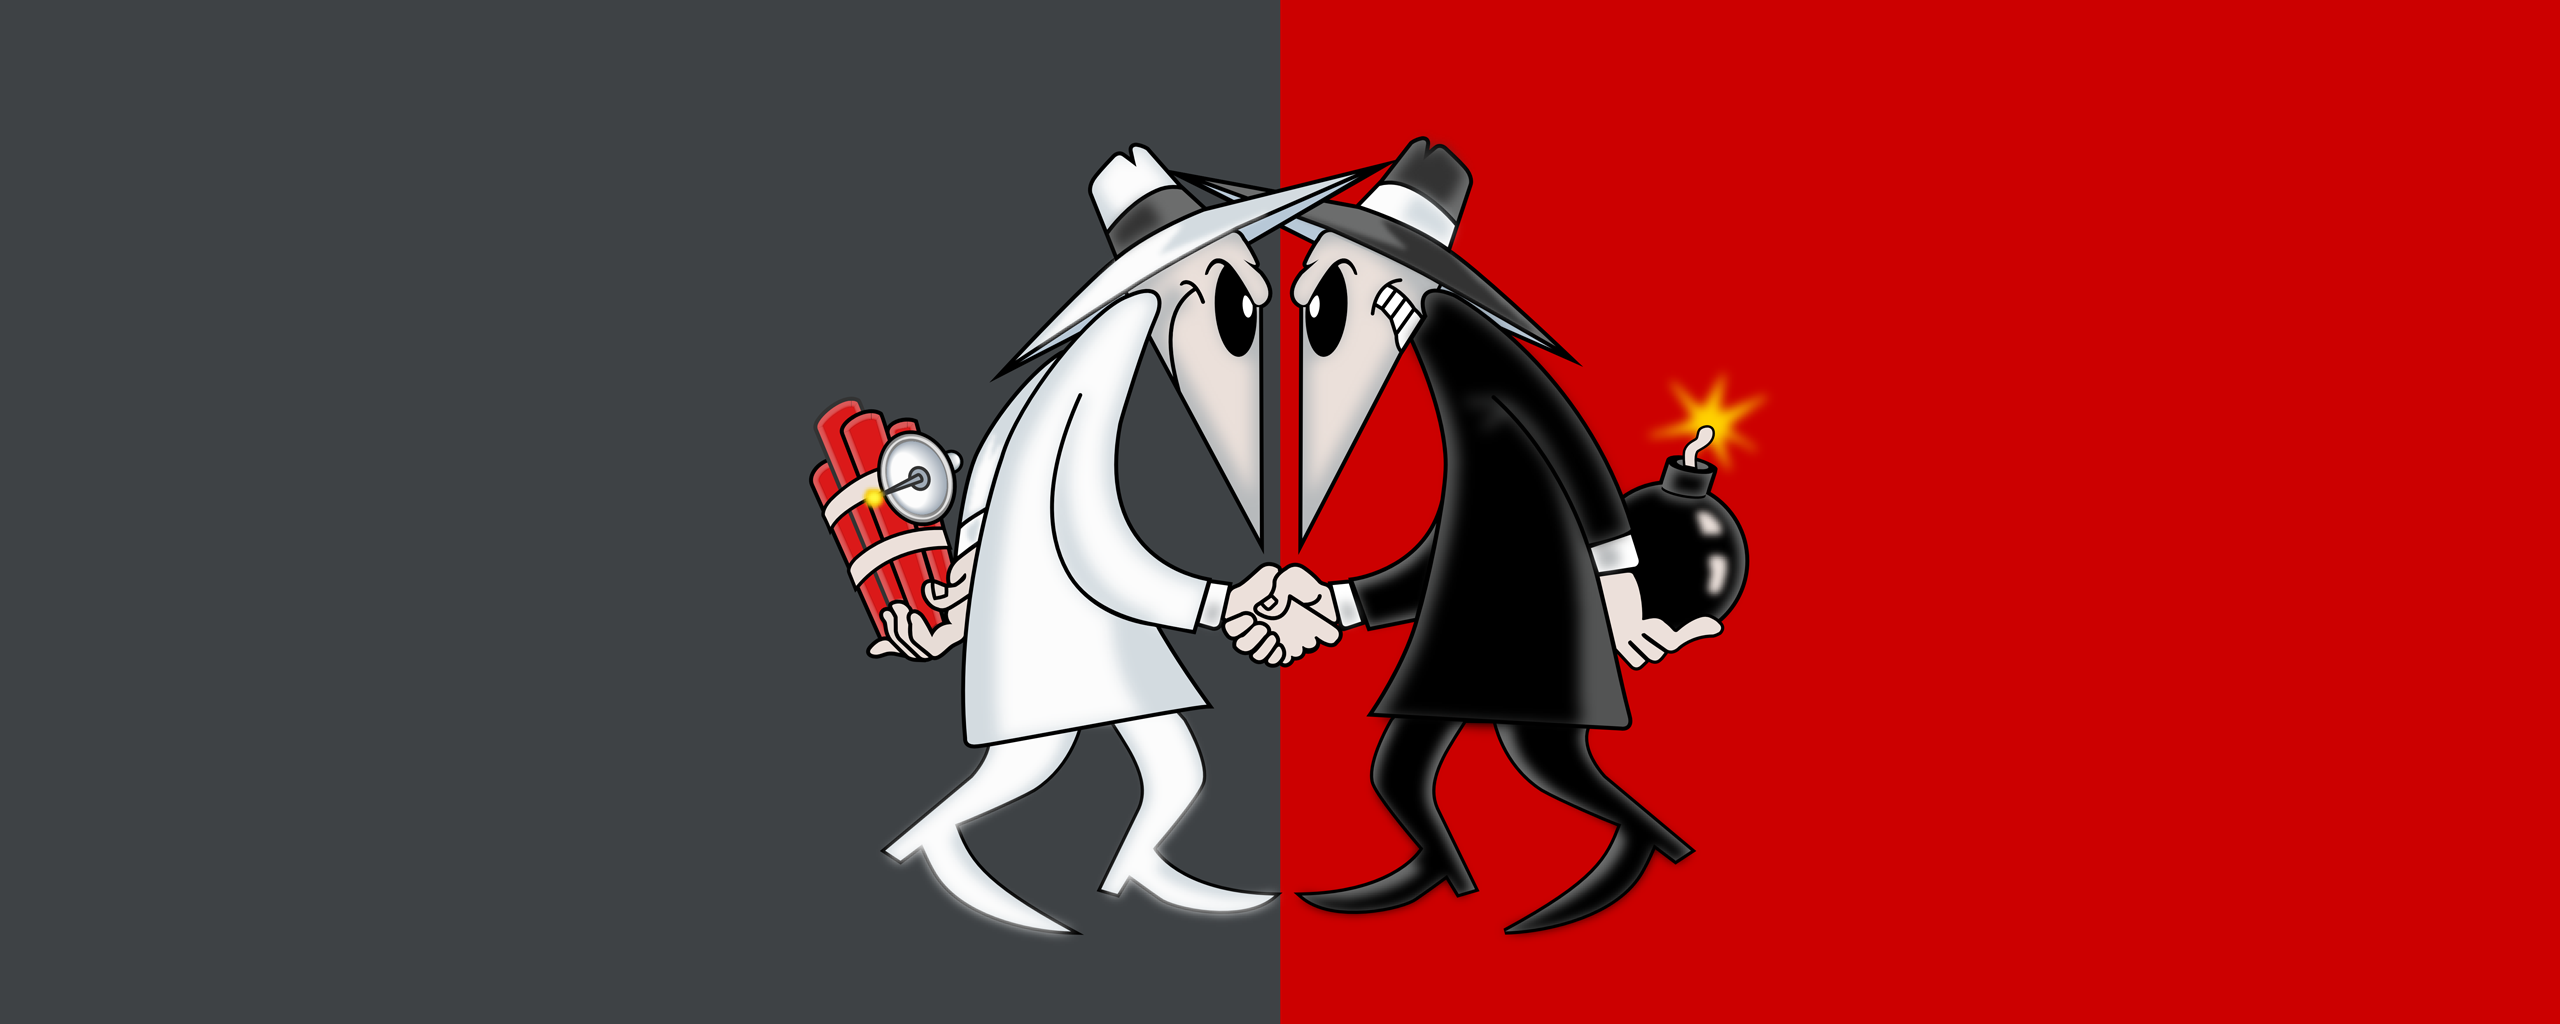 Spy vs Spy